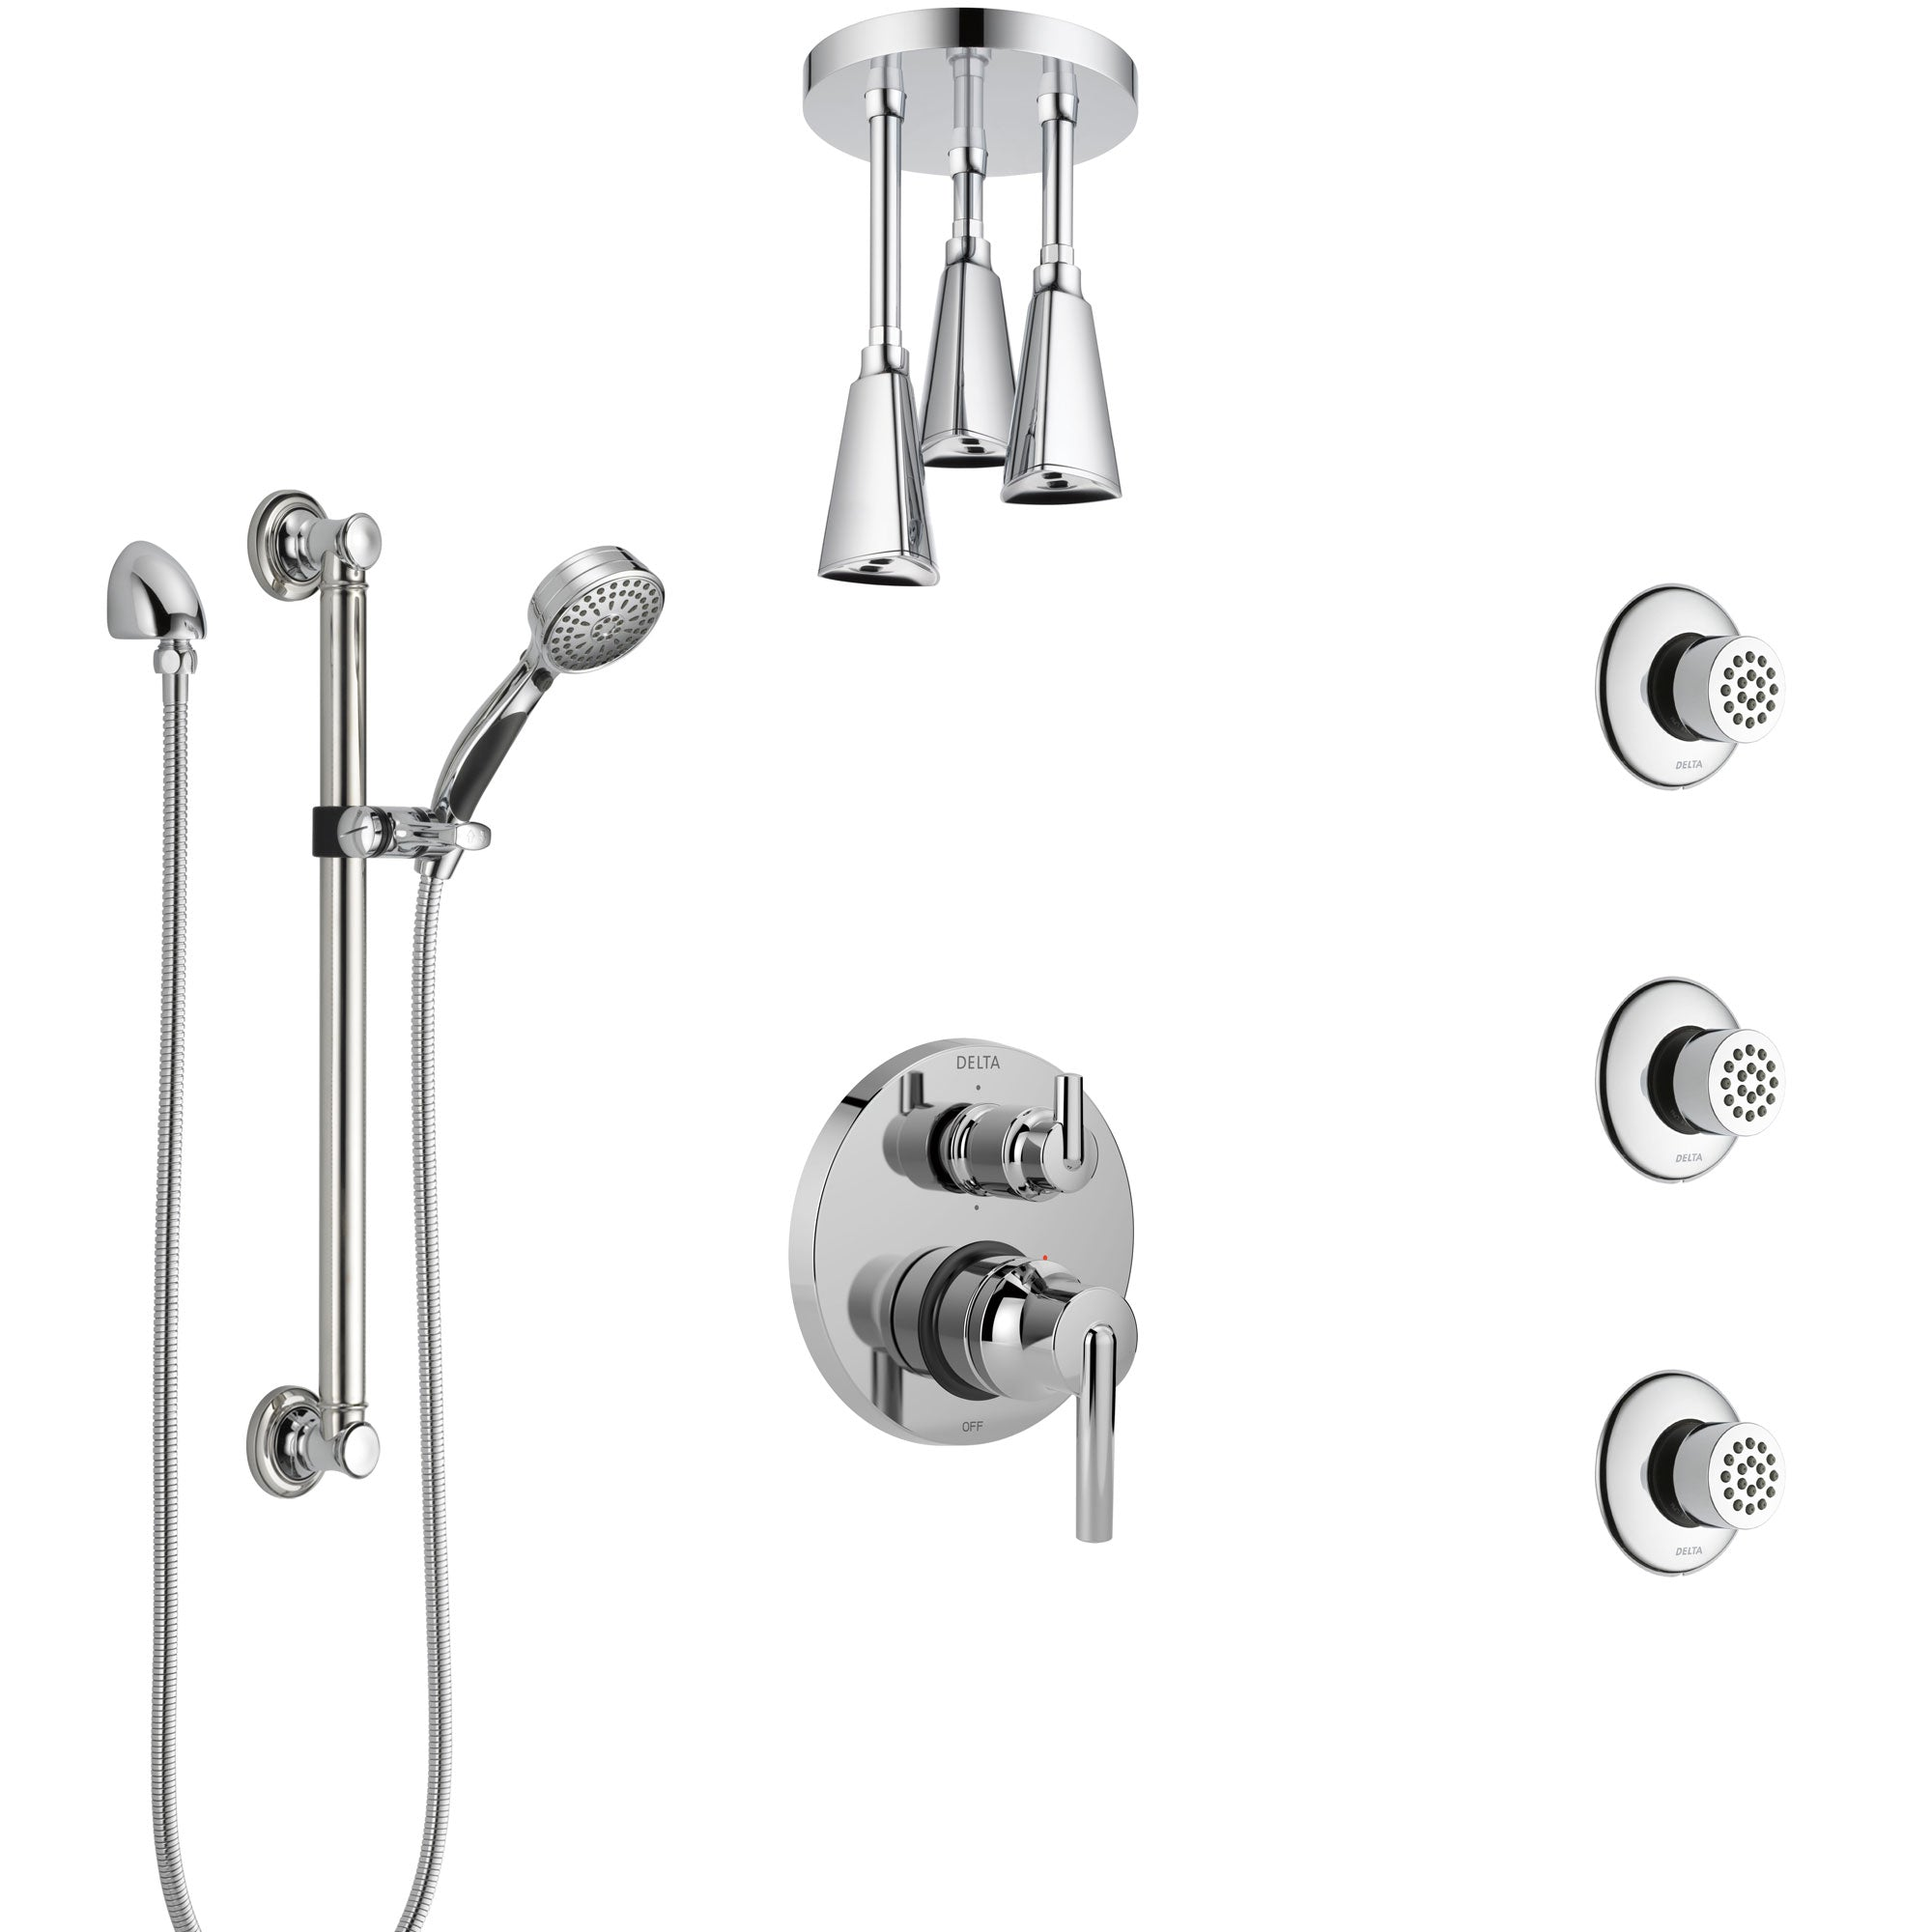 Delta Trinsic Chrome Shower System with Control Handle, Integrated Diverter, Ceiling Showerhead, 3 Body Sprays, and Grab Bar Hand Shower SS249593